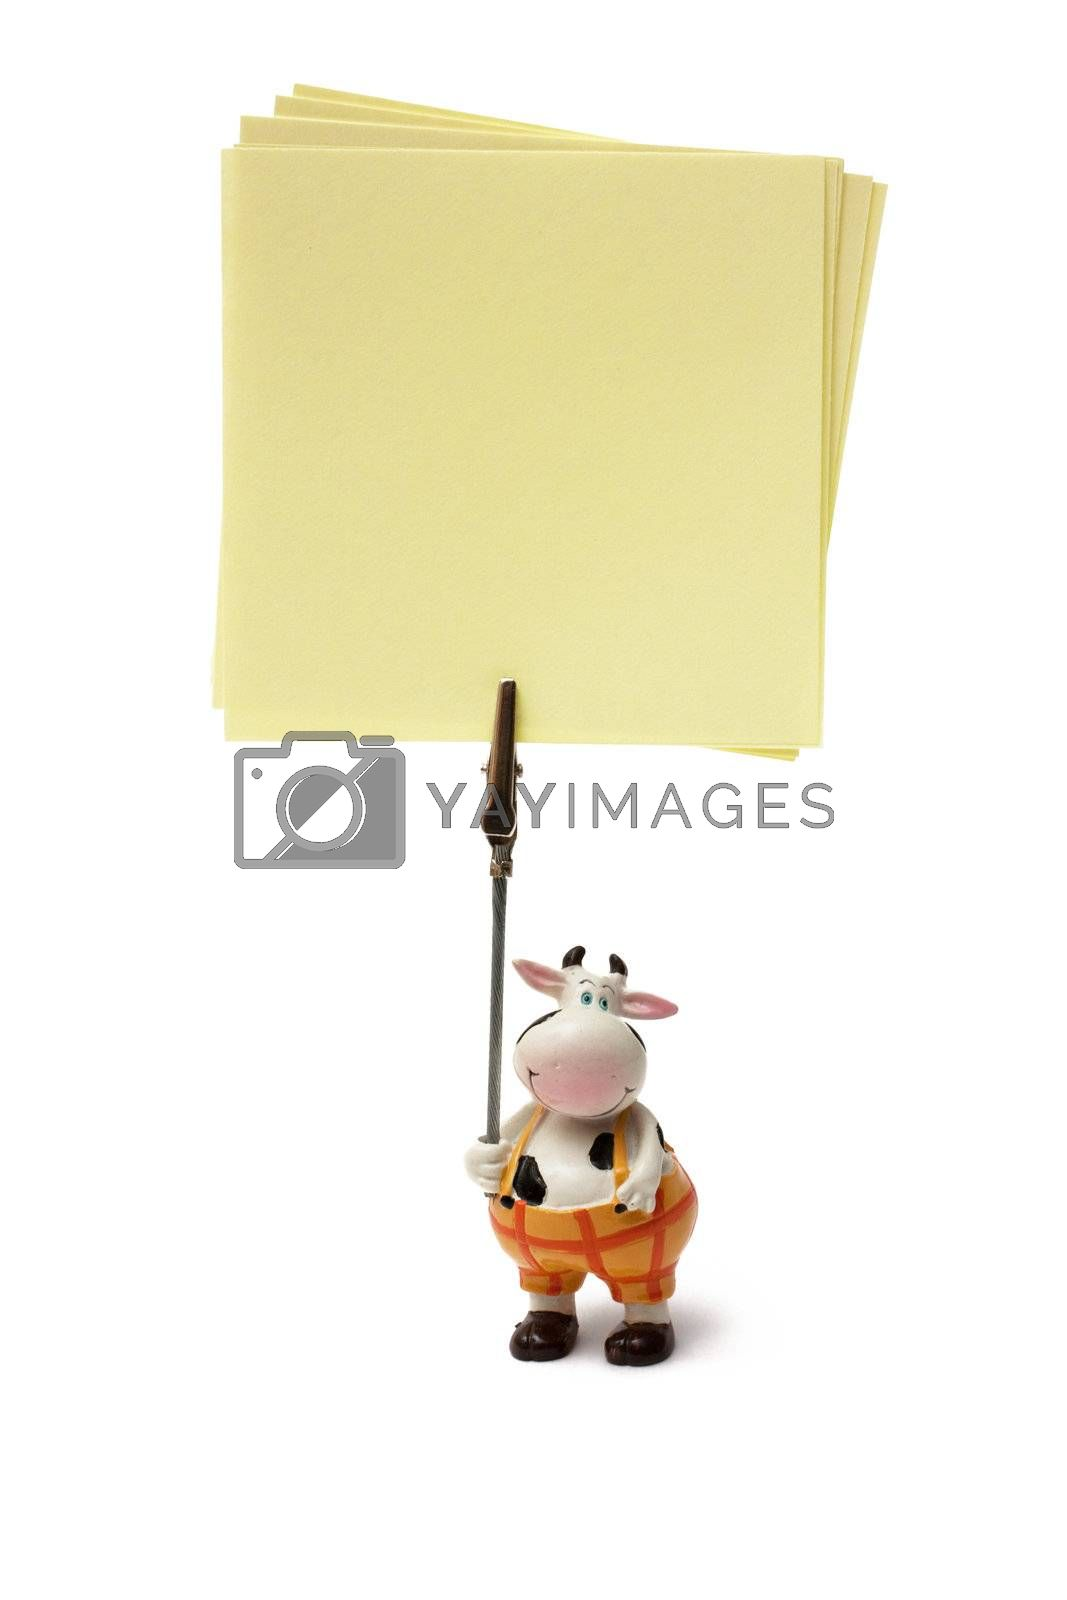 Cow-shaped support for a note